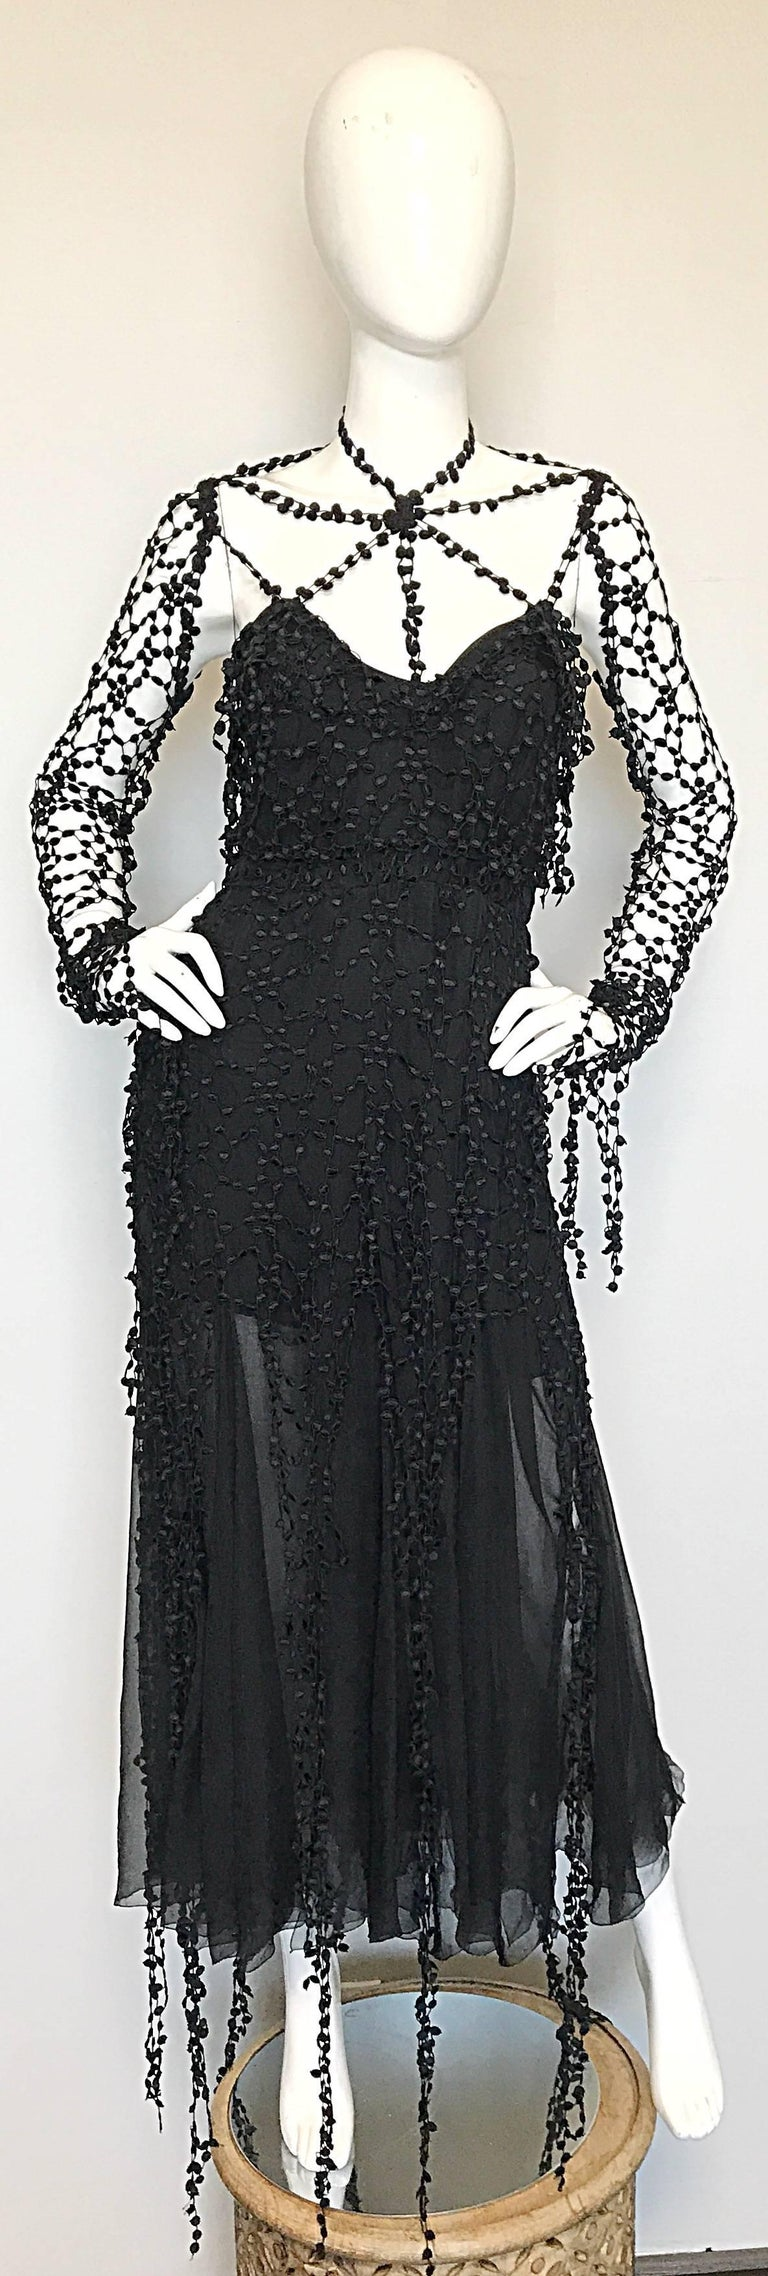 Sensational vintage 1990s KARL LAGERFELD Couture black silk chiffon 'Spiderweb' goth evening dress! Features hand crochet overlay throughout the body, skirt and sleeves. Hidden zipper up the side with multiple hook-and-eye closure. Hidden